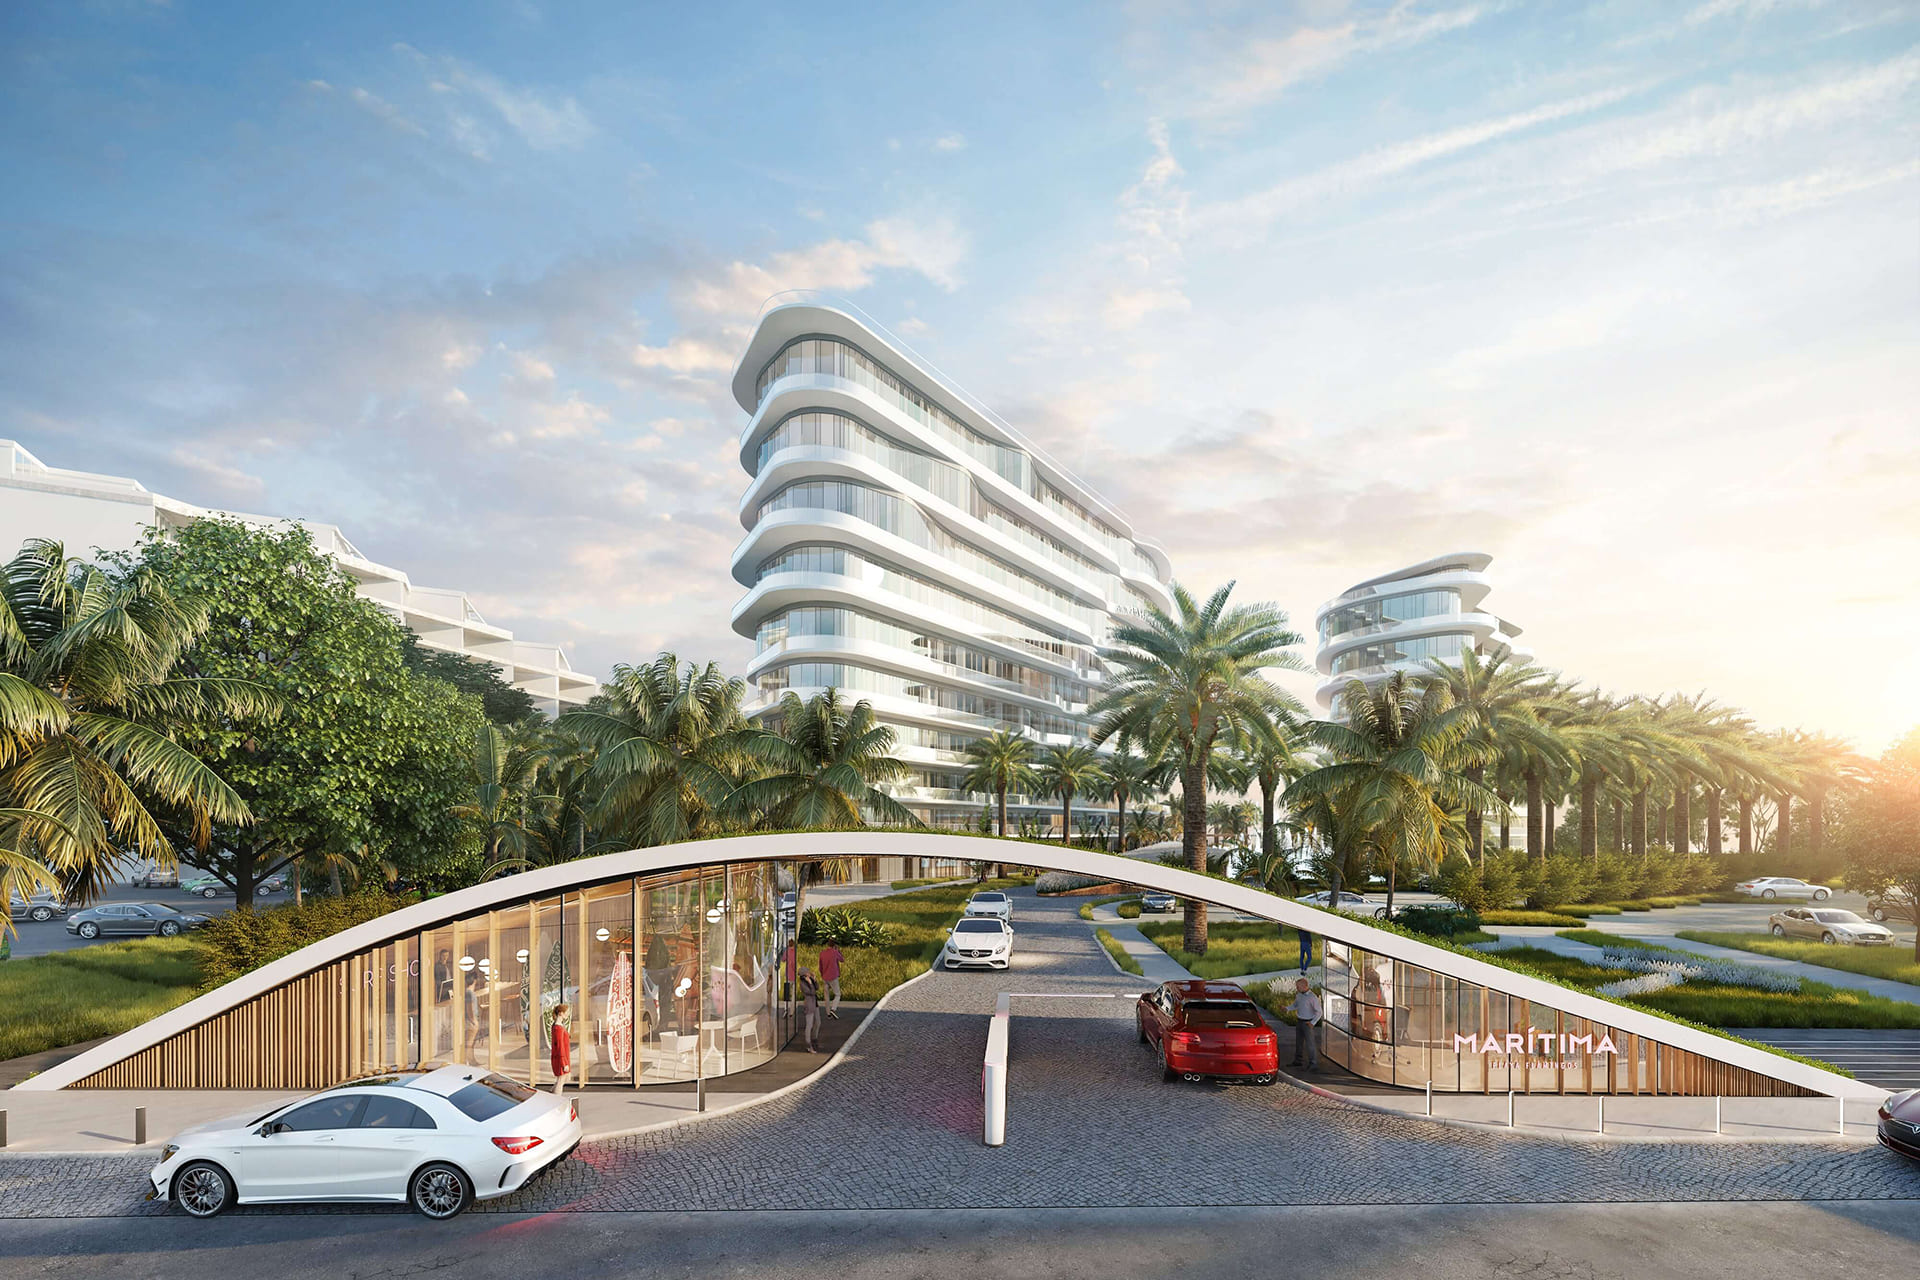 MARITIMA <br/> Exclusive residences on the picturesque coast